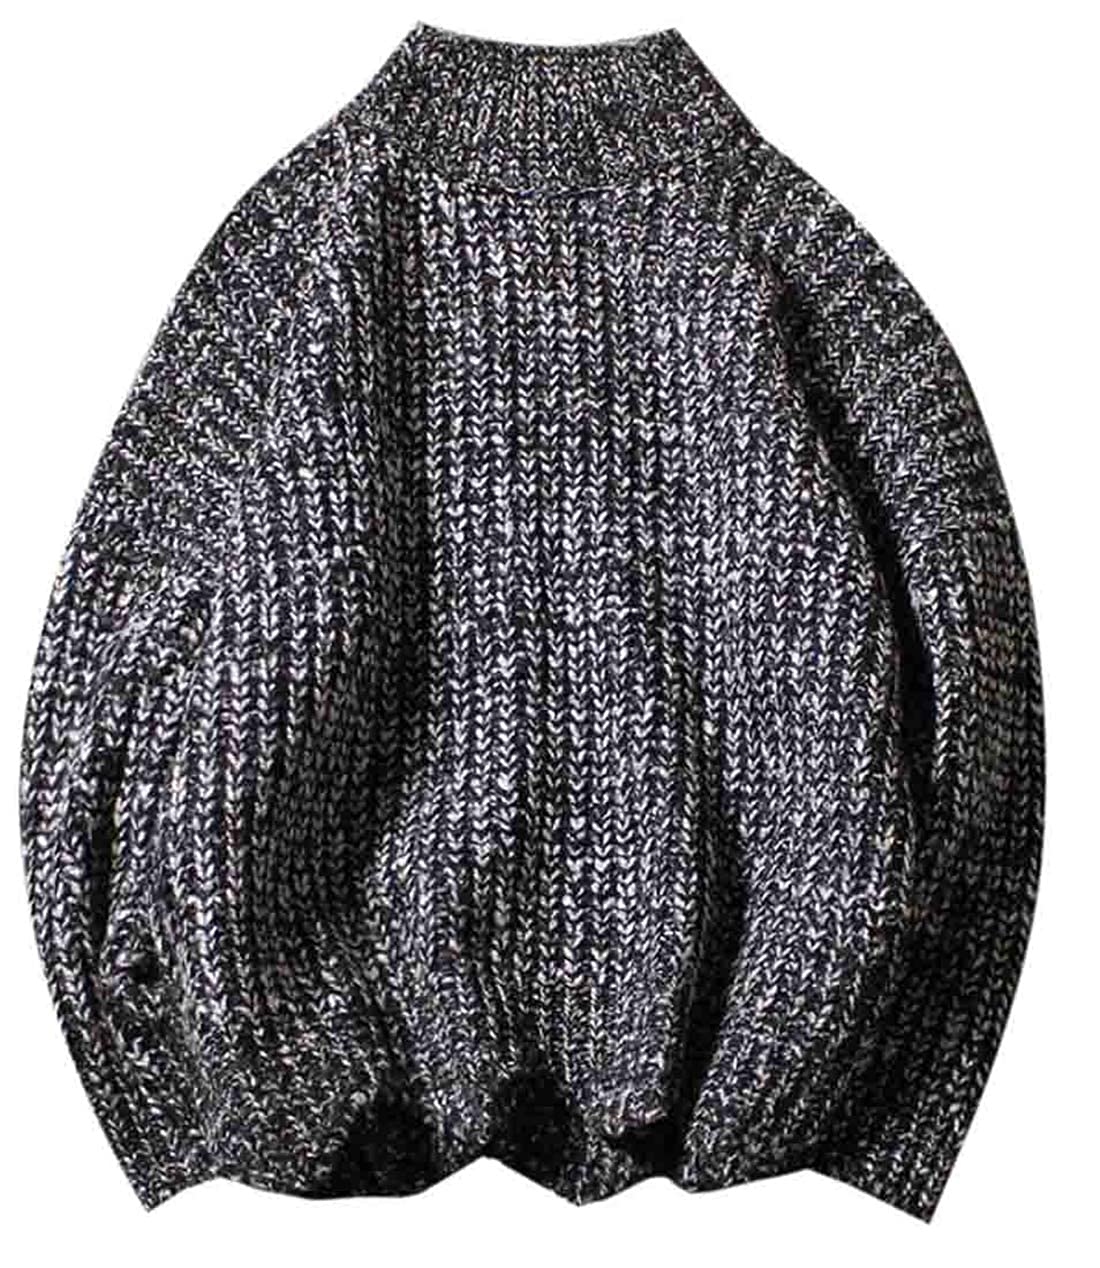 Spirio Mens Winter Casual Fashion Thicken Cable Twist Turtleneck Knitted Sweater